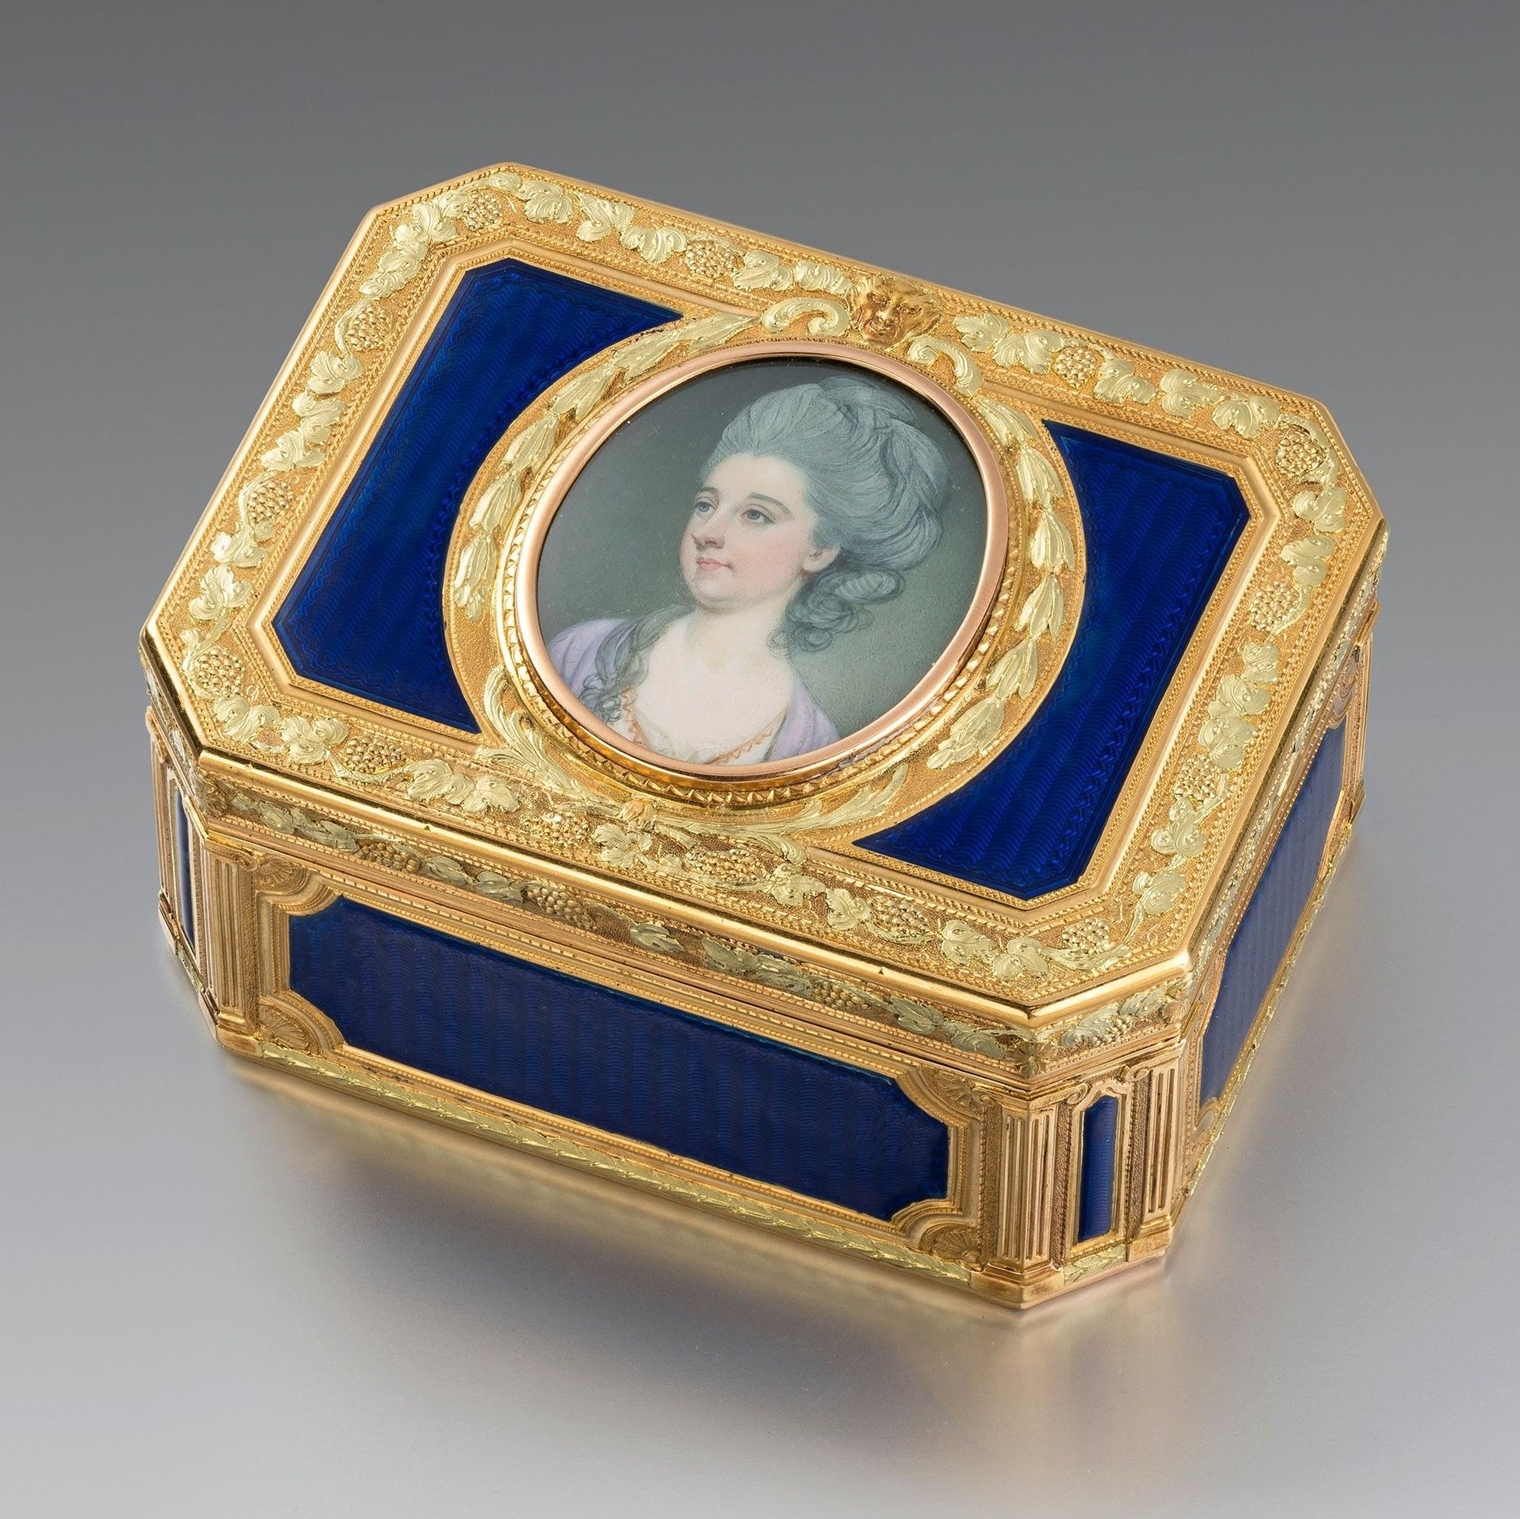 A French Late 18th Century Gold and Enamel Box